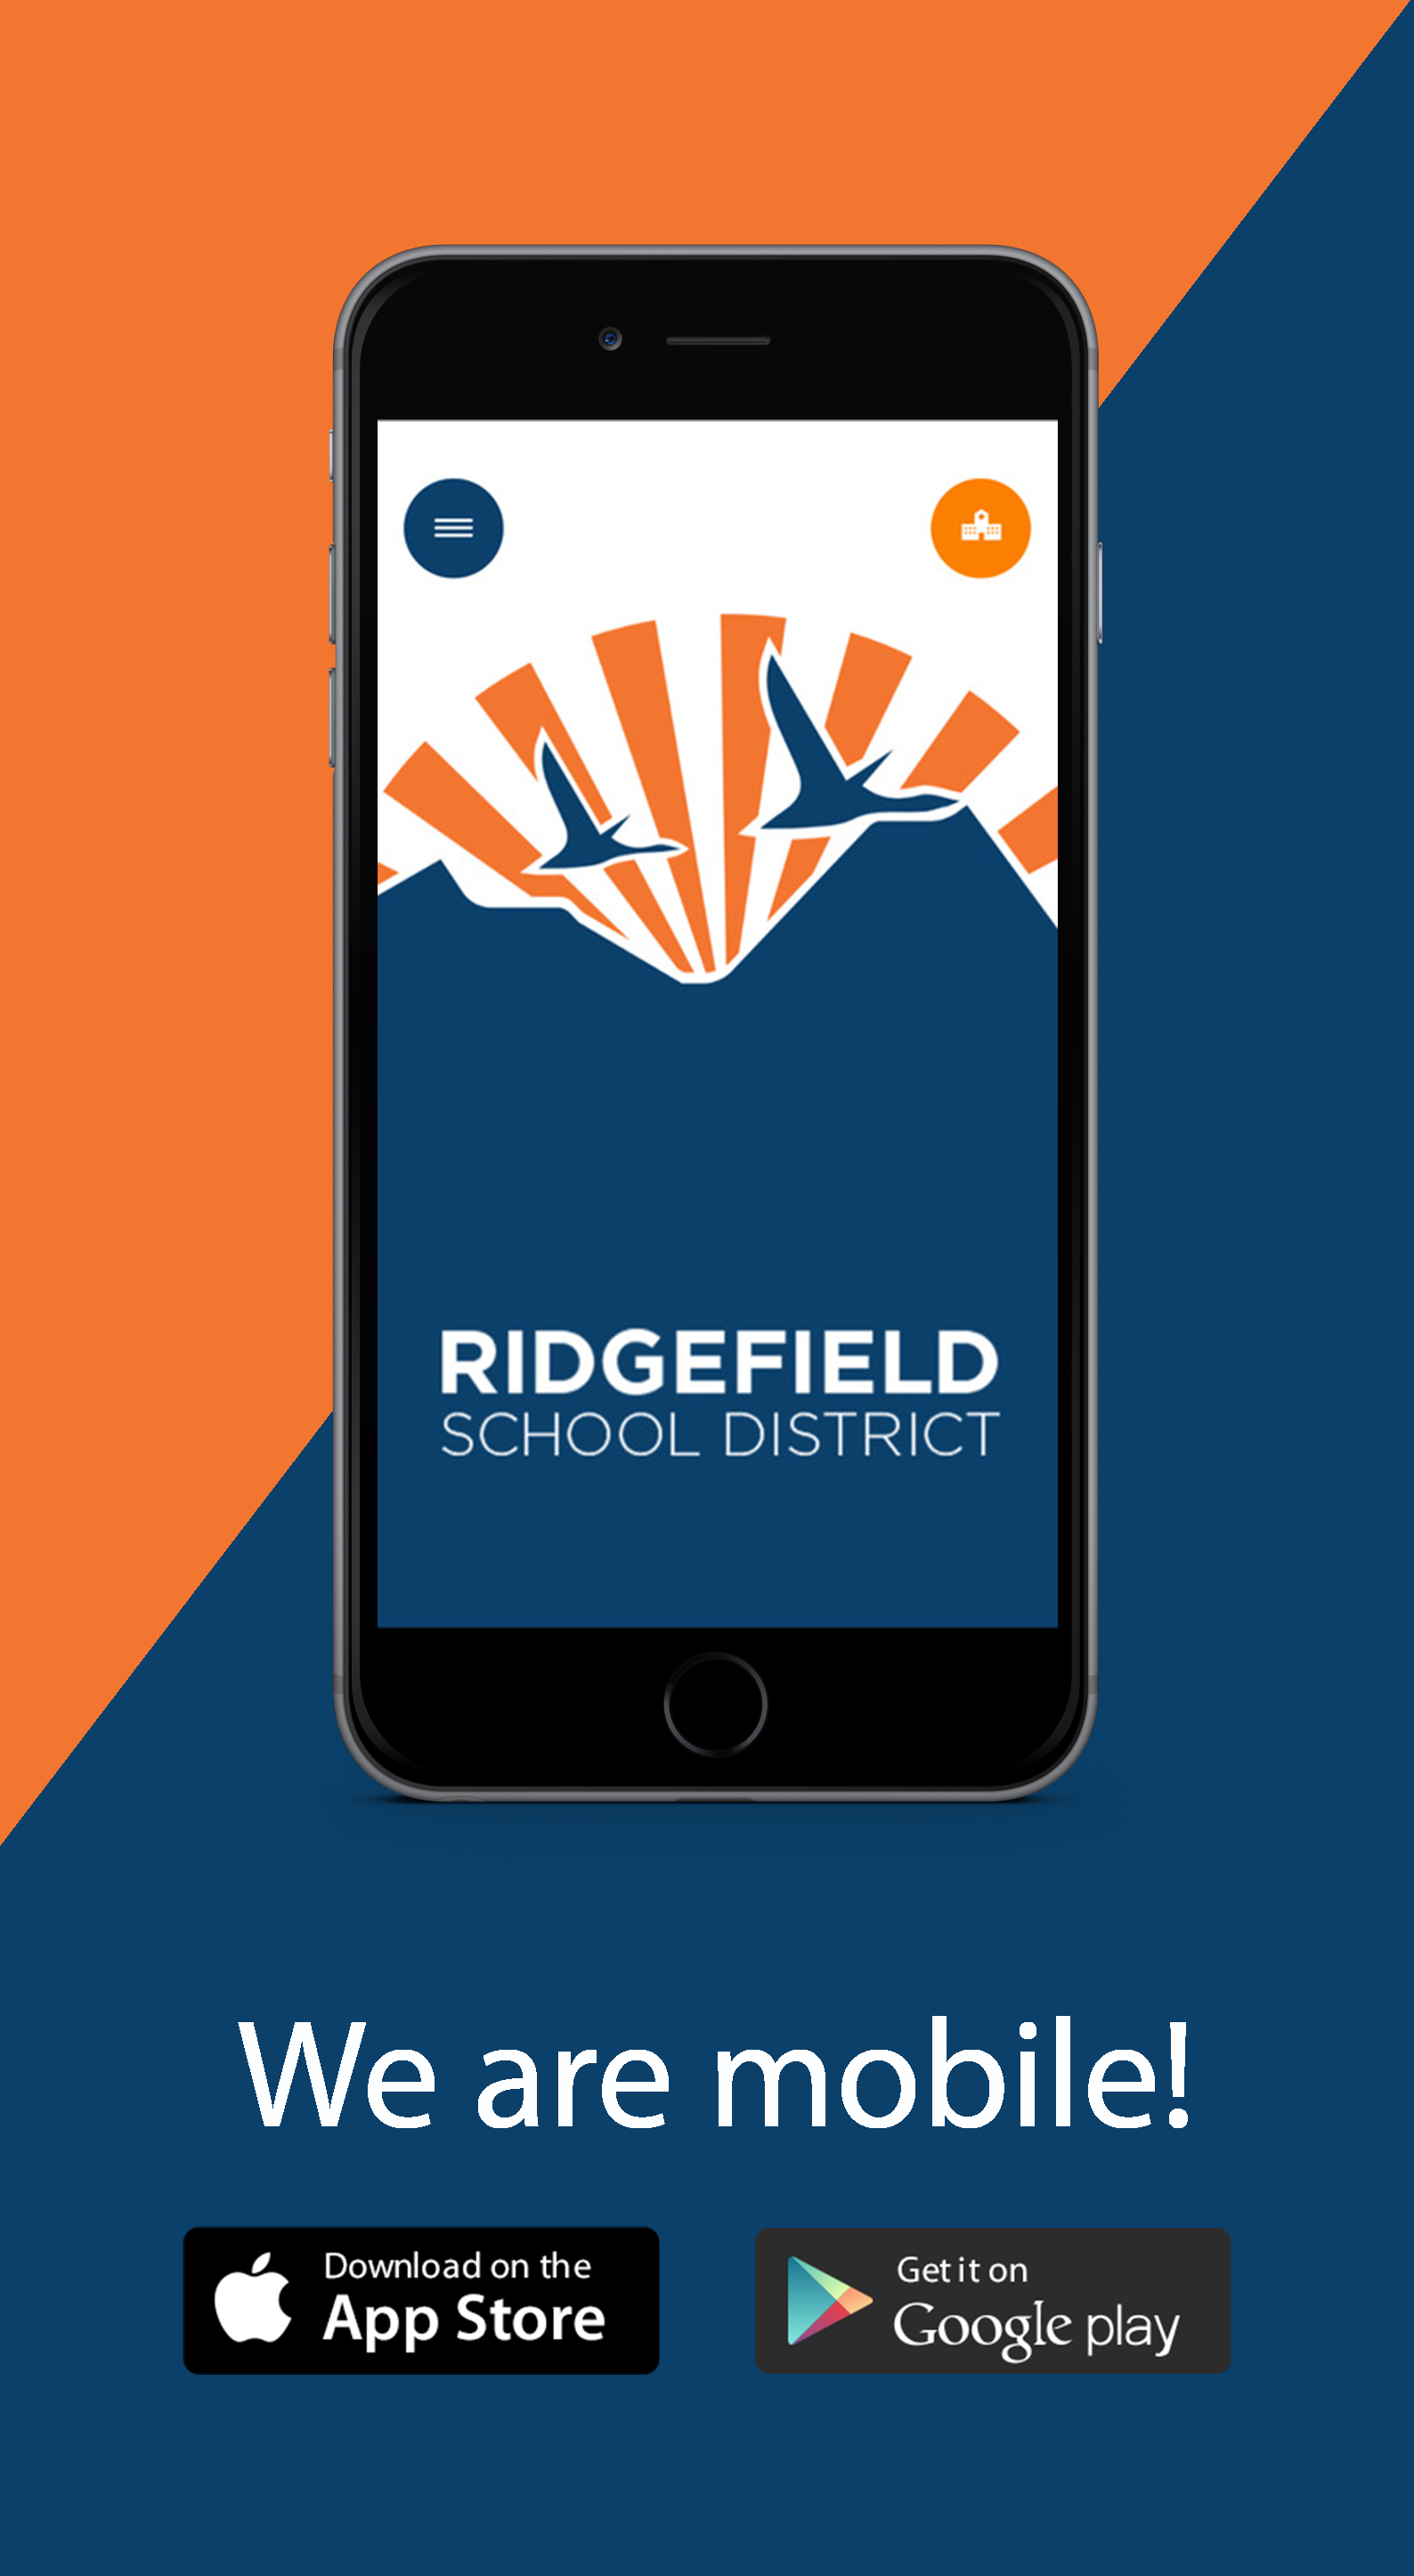 Ridgefield School District Rolls Out New Website and App